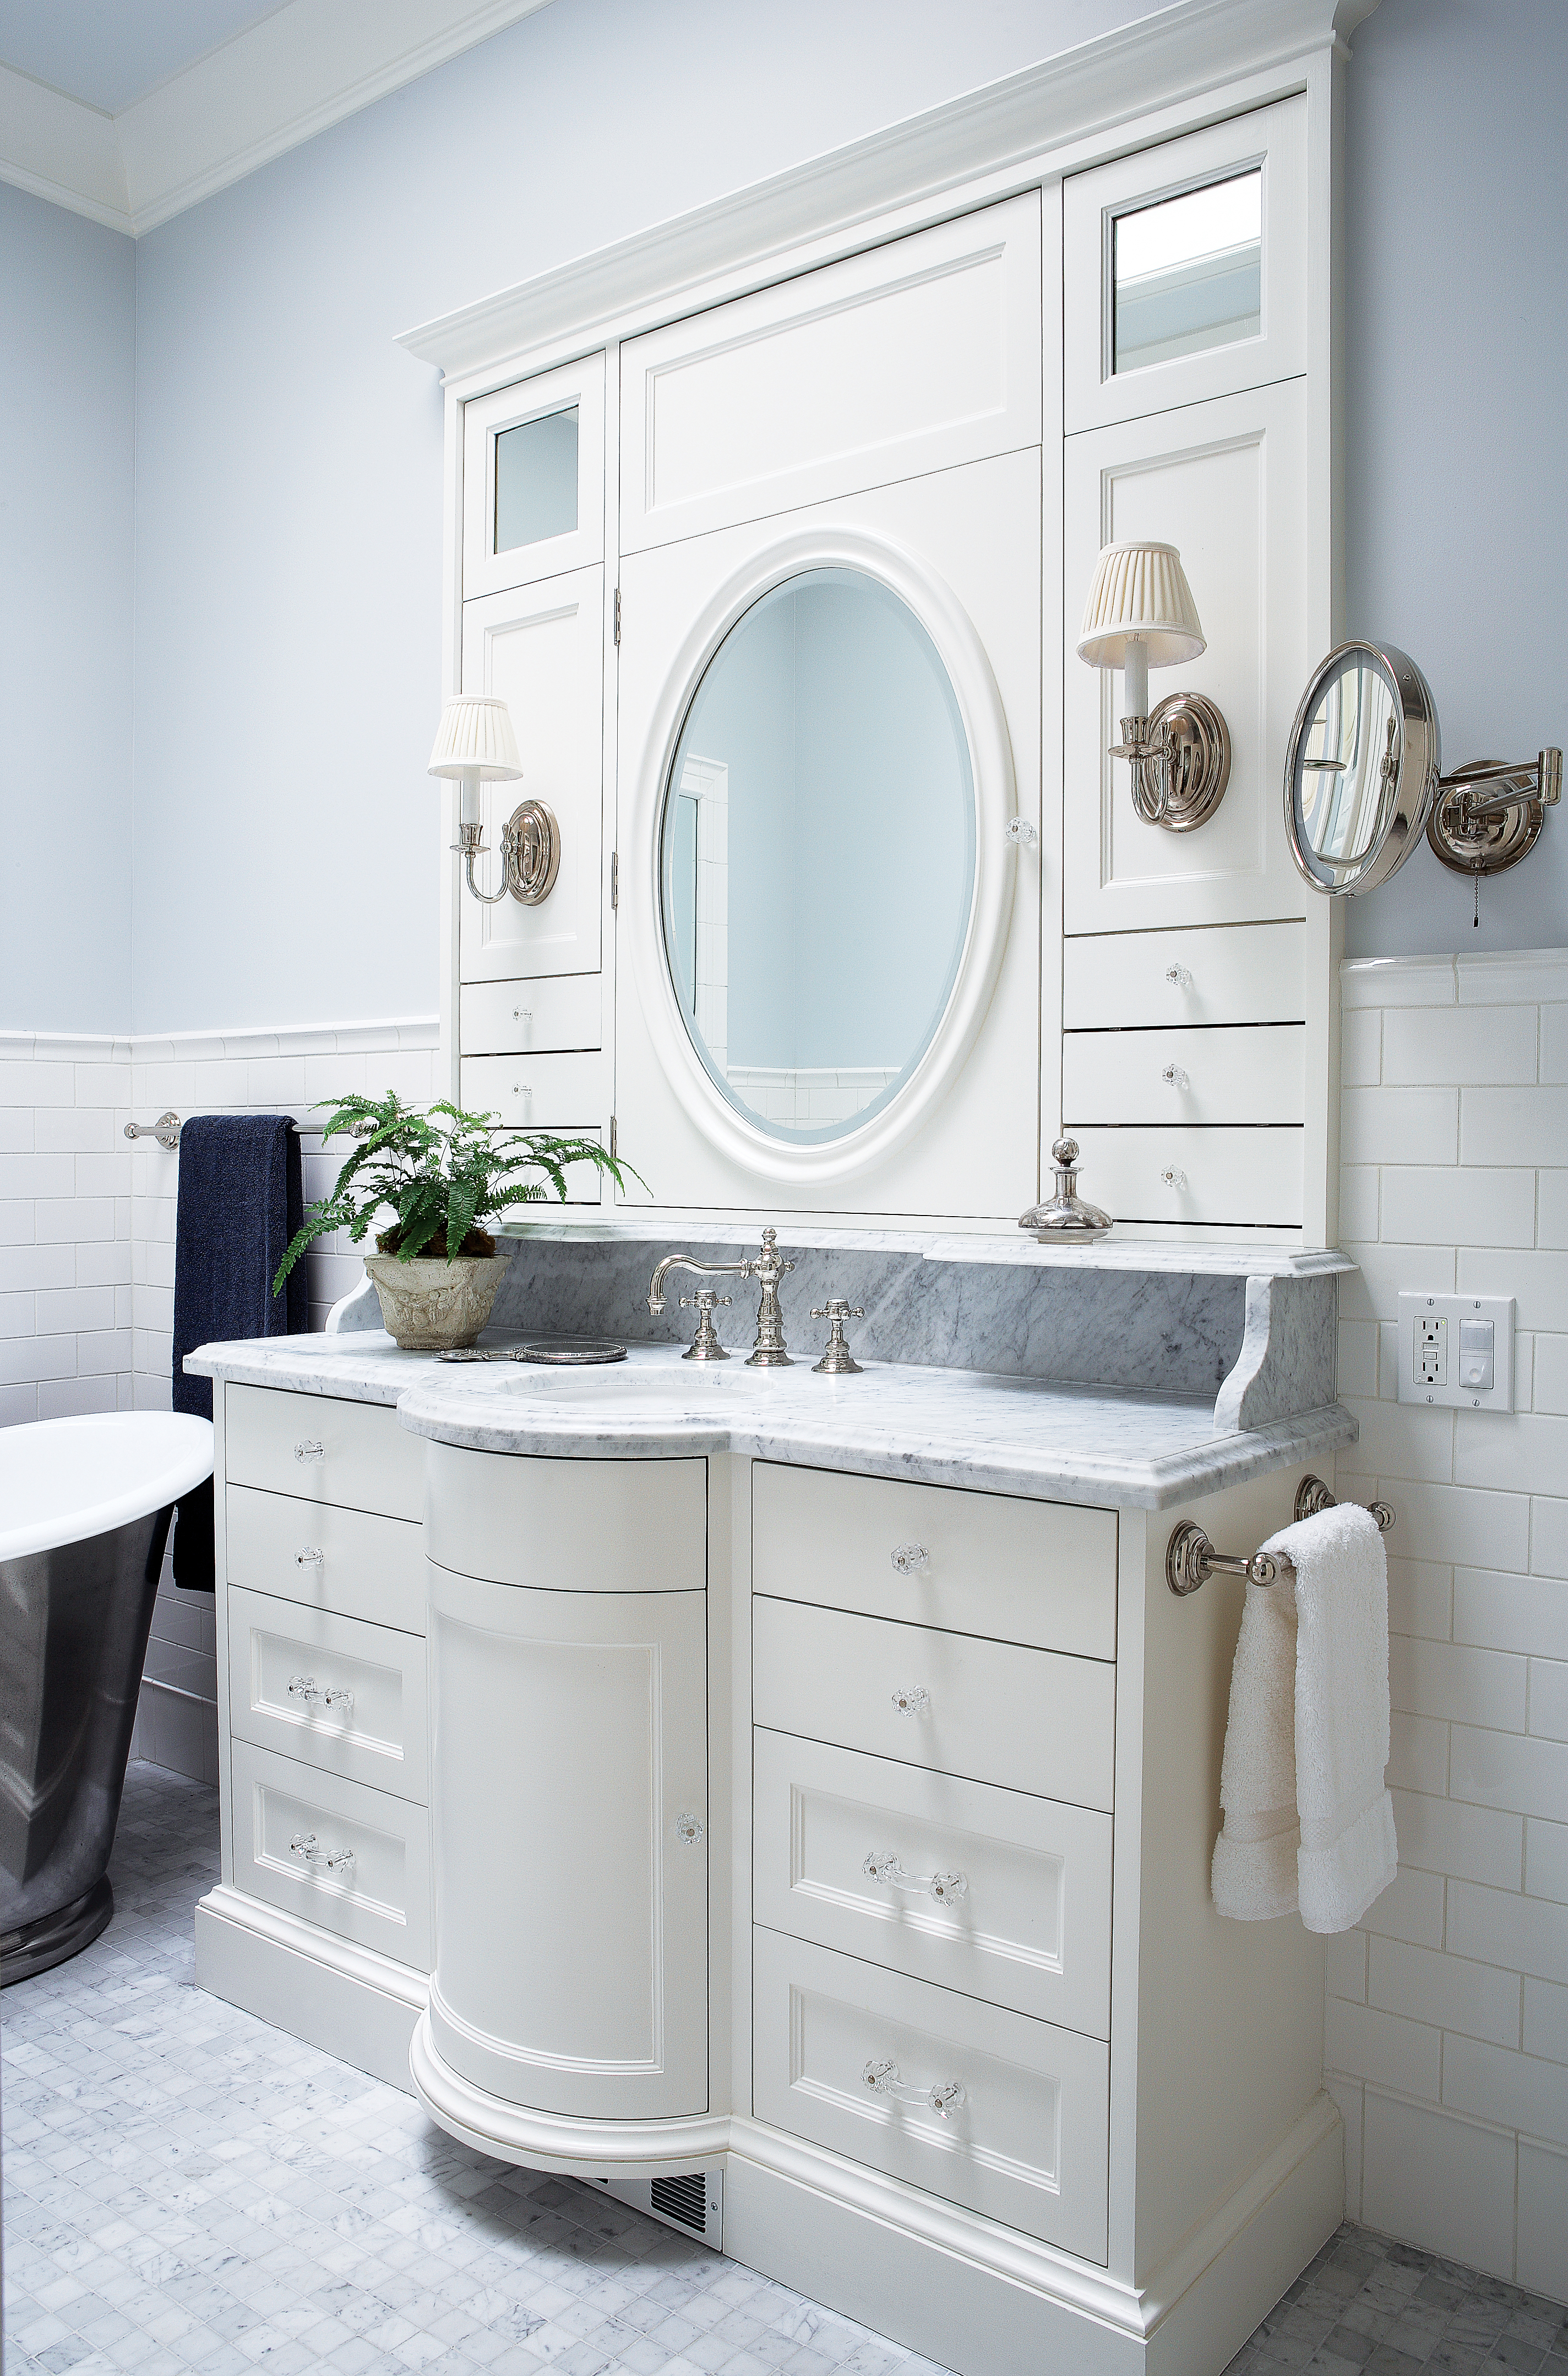 ideas small bathroom organization cute and cabinets onsingularity sink within com floating designs vanity best